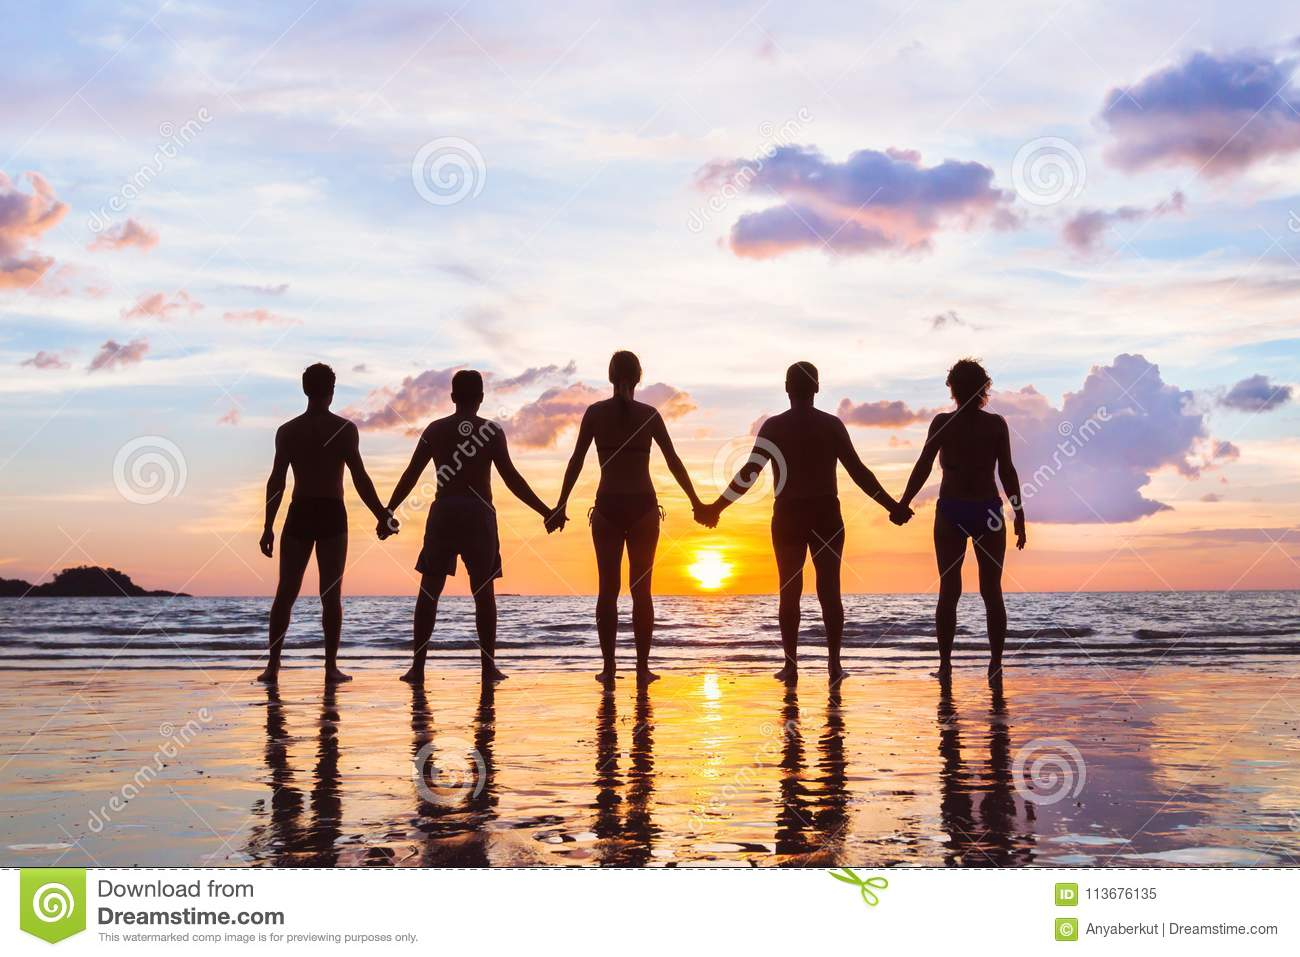 Community or group concept, silhouettes of people standing together and holding hands, team